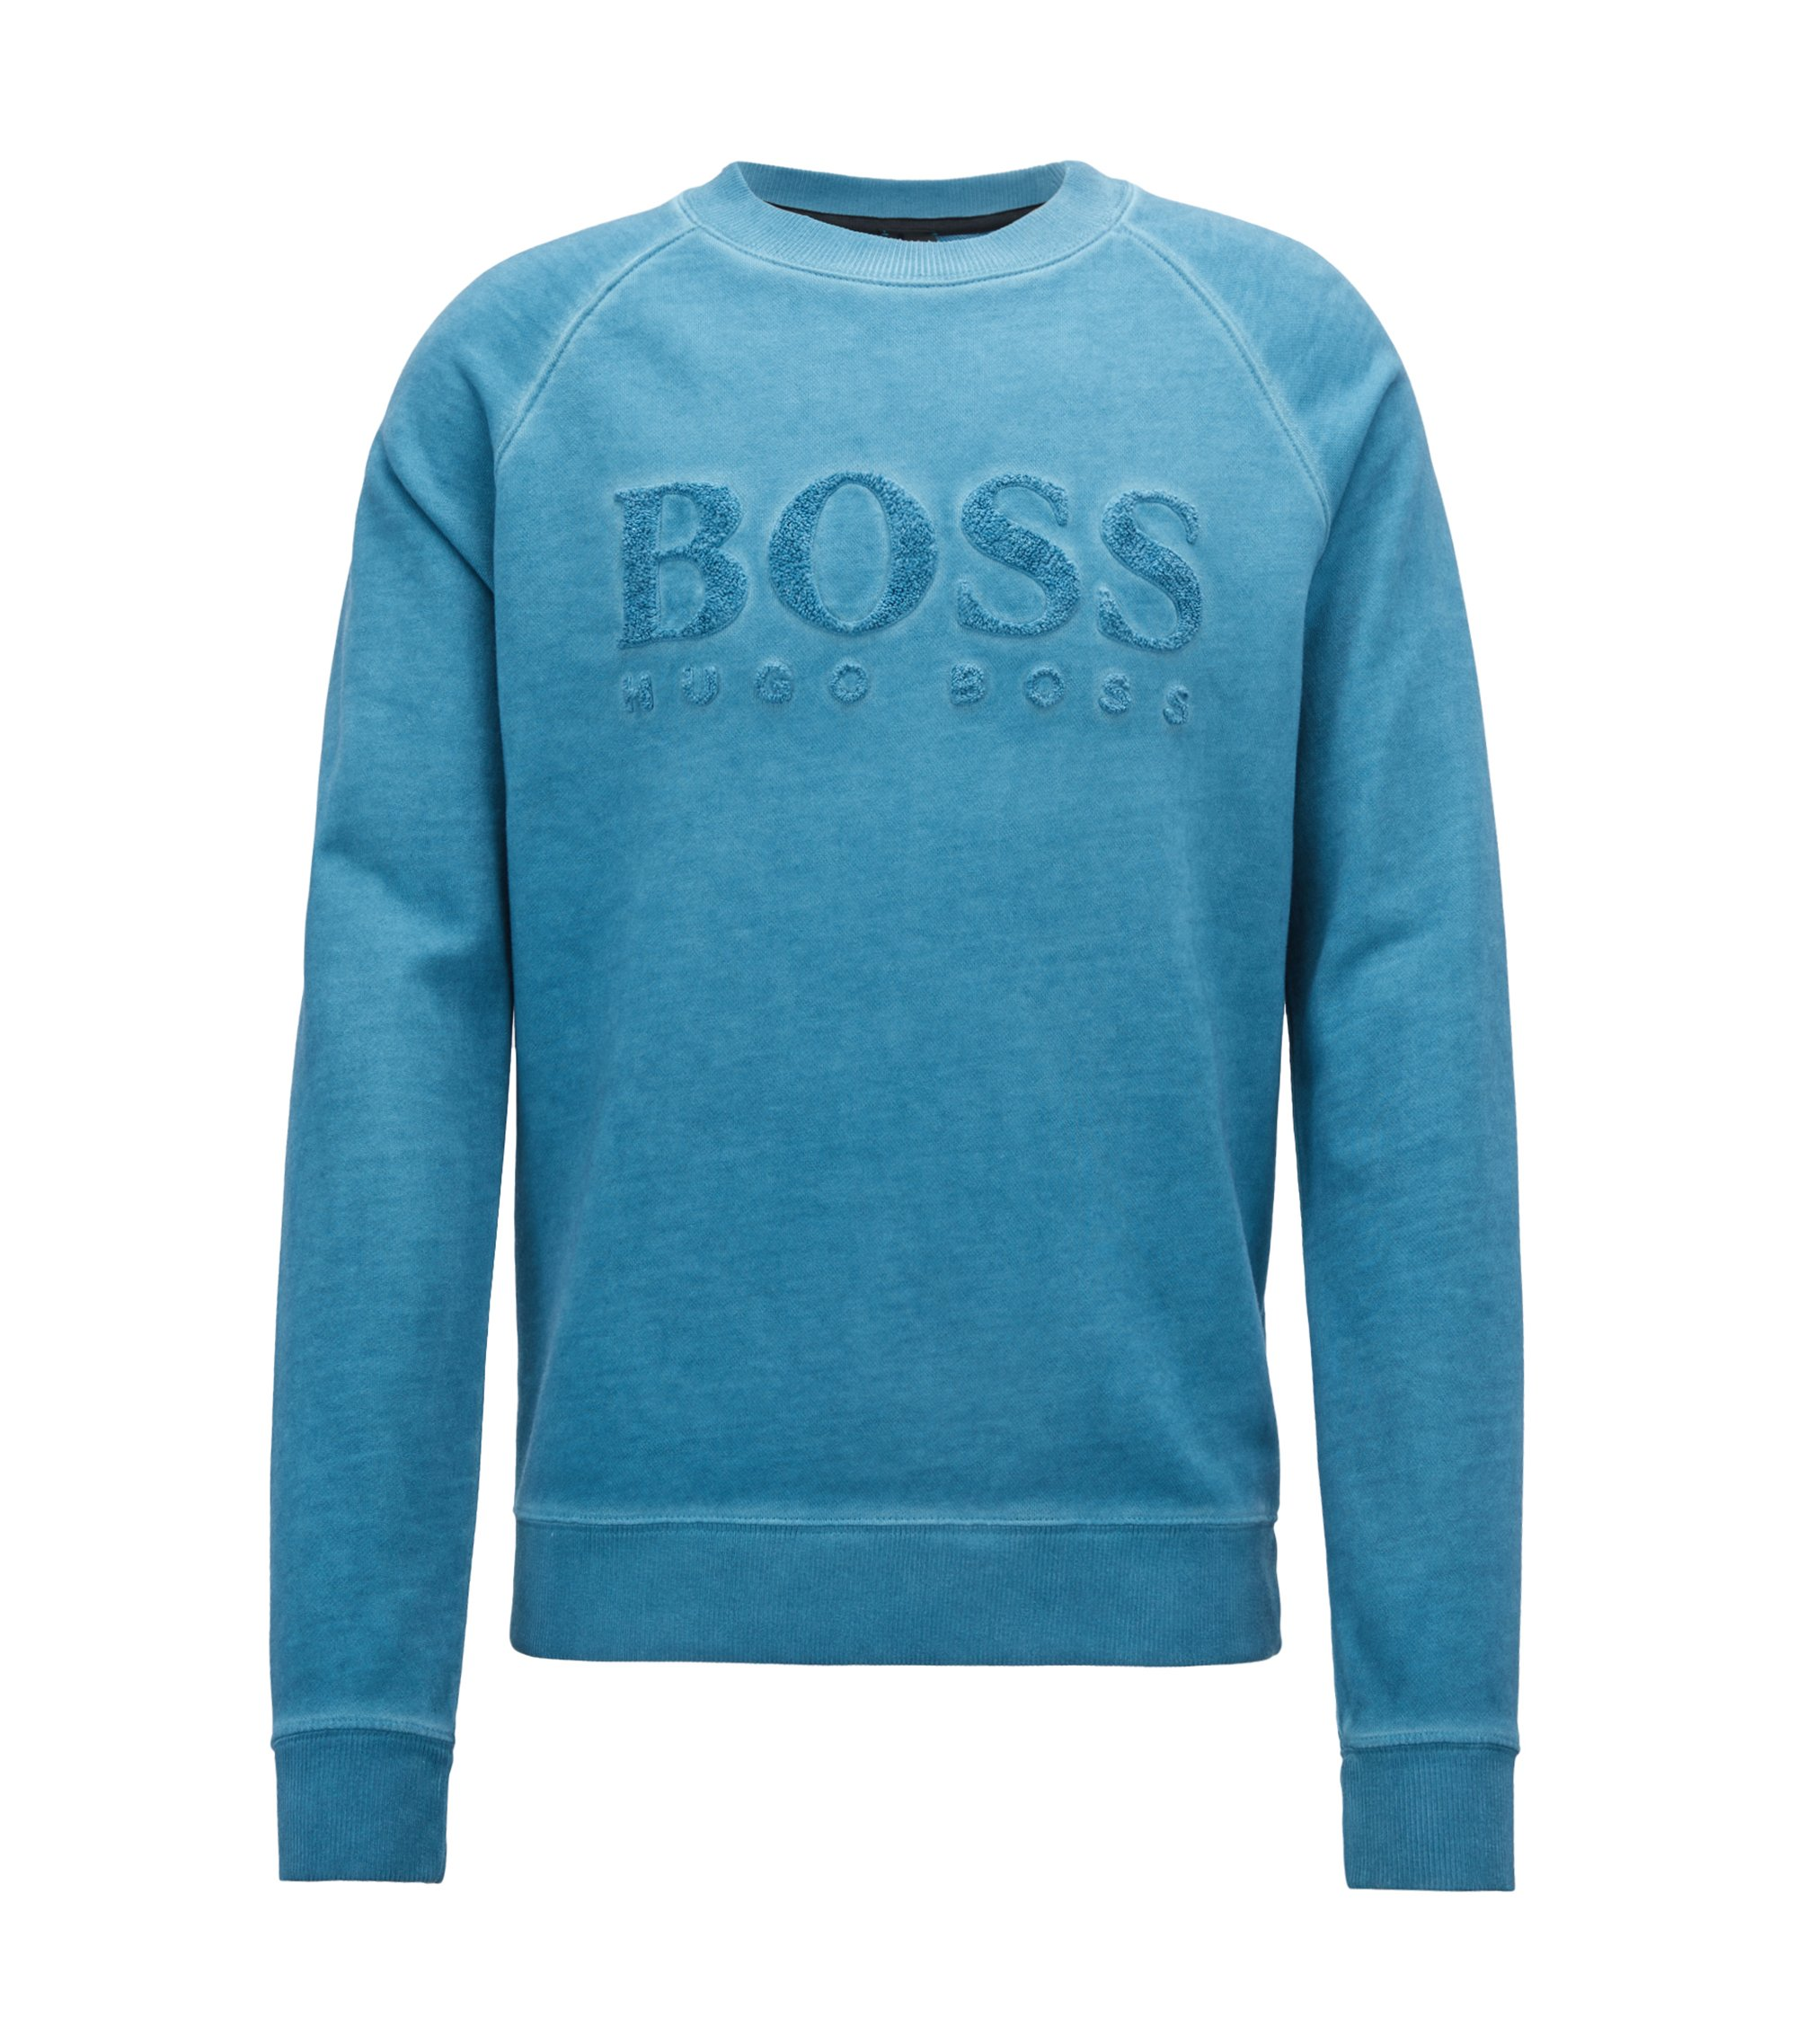 Sweat en molleton French Terry à logo brodé, Bleu